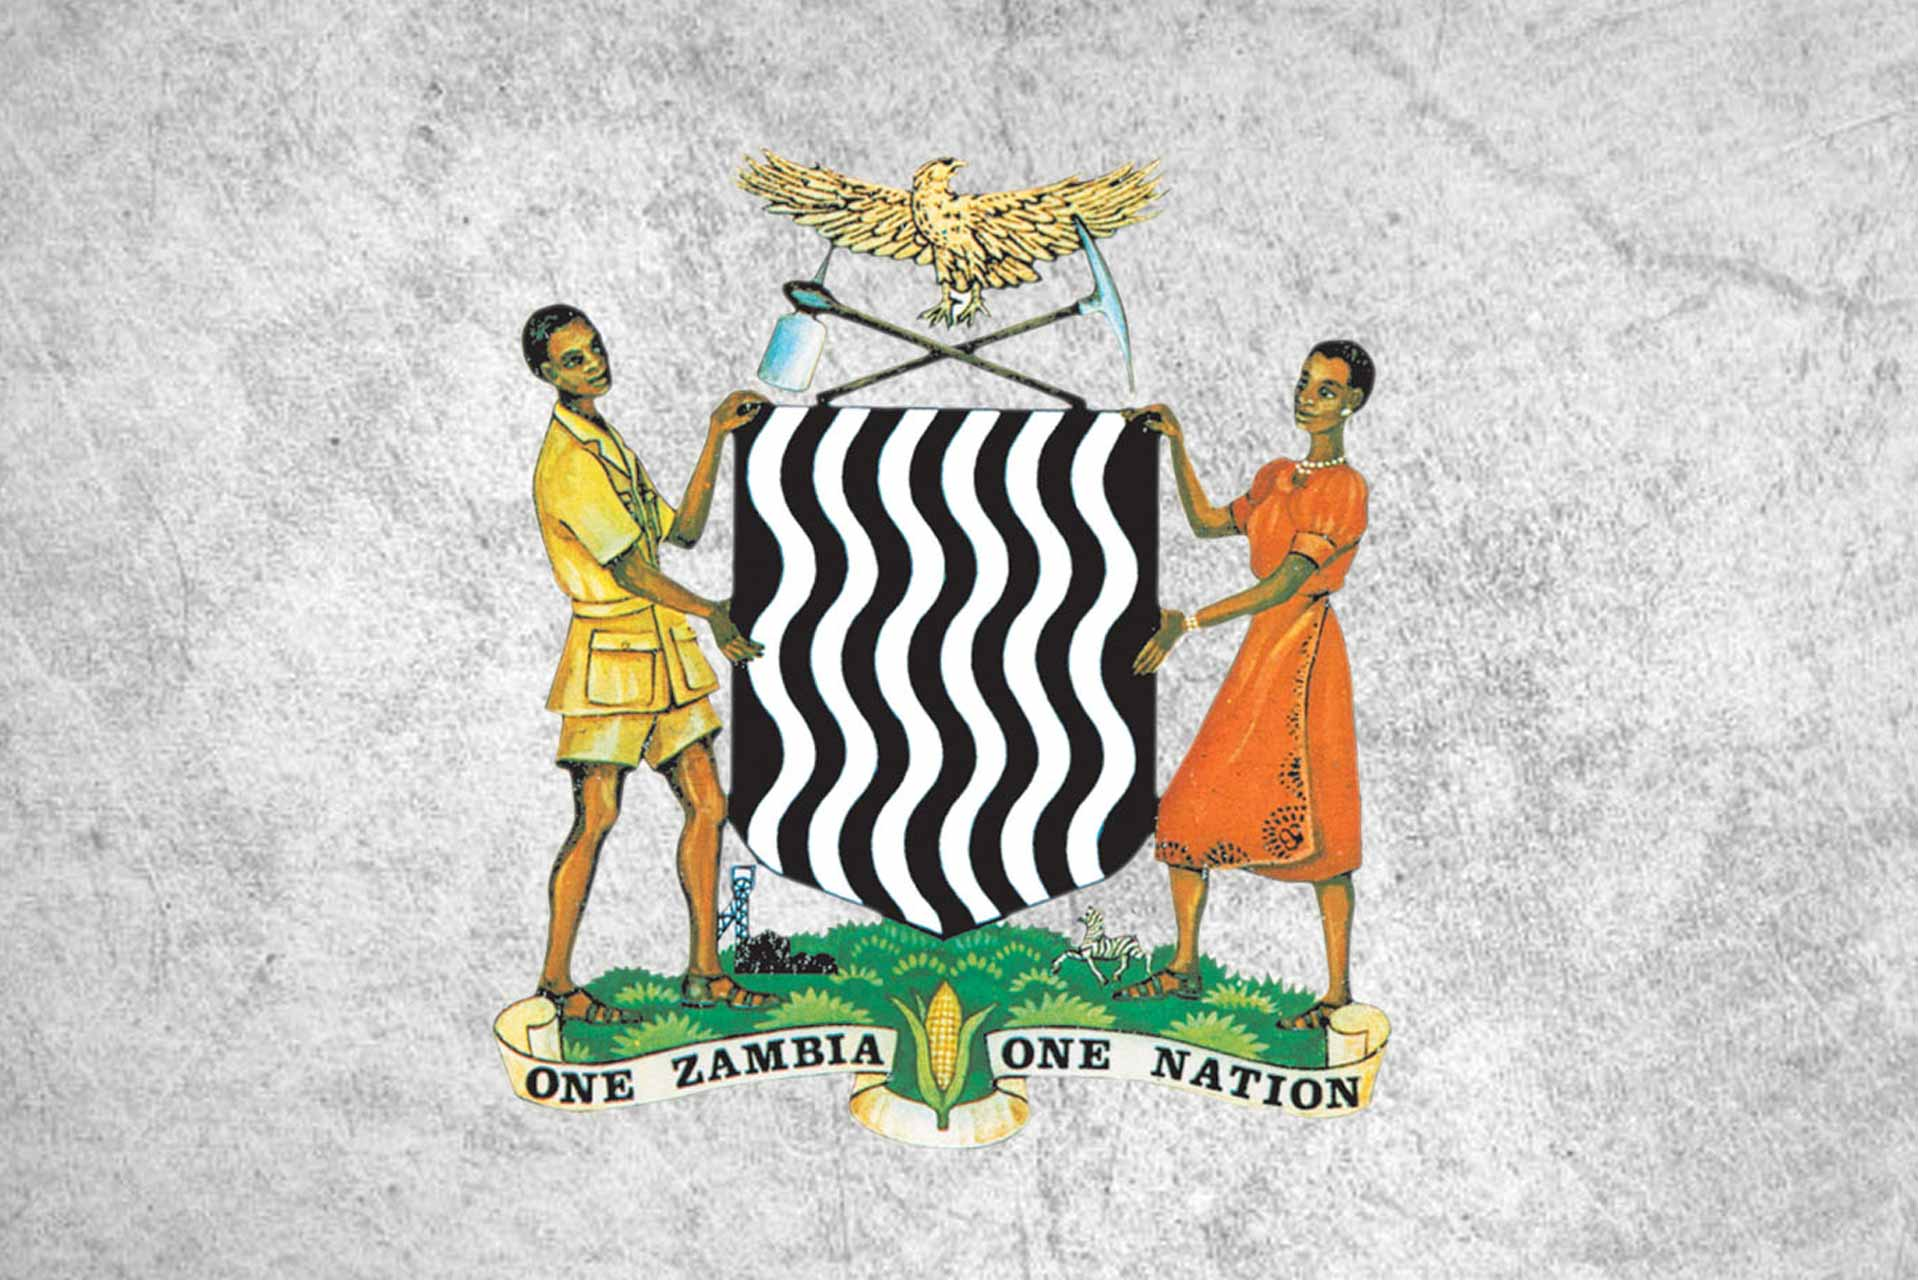 Ministry of Lands, Natural Resources and Environment